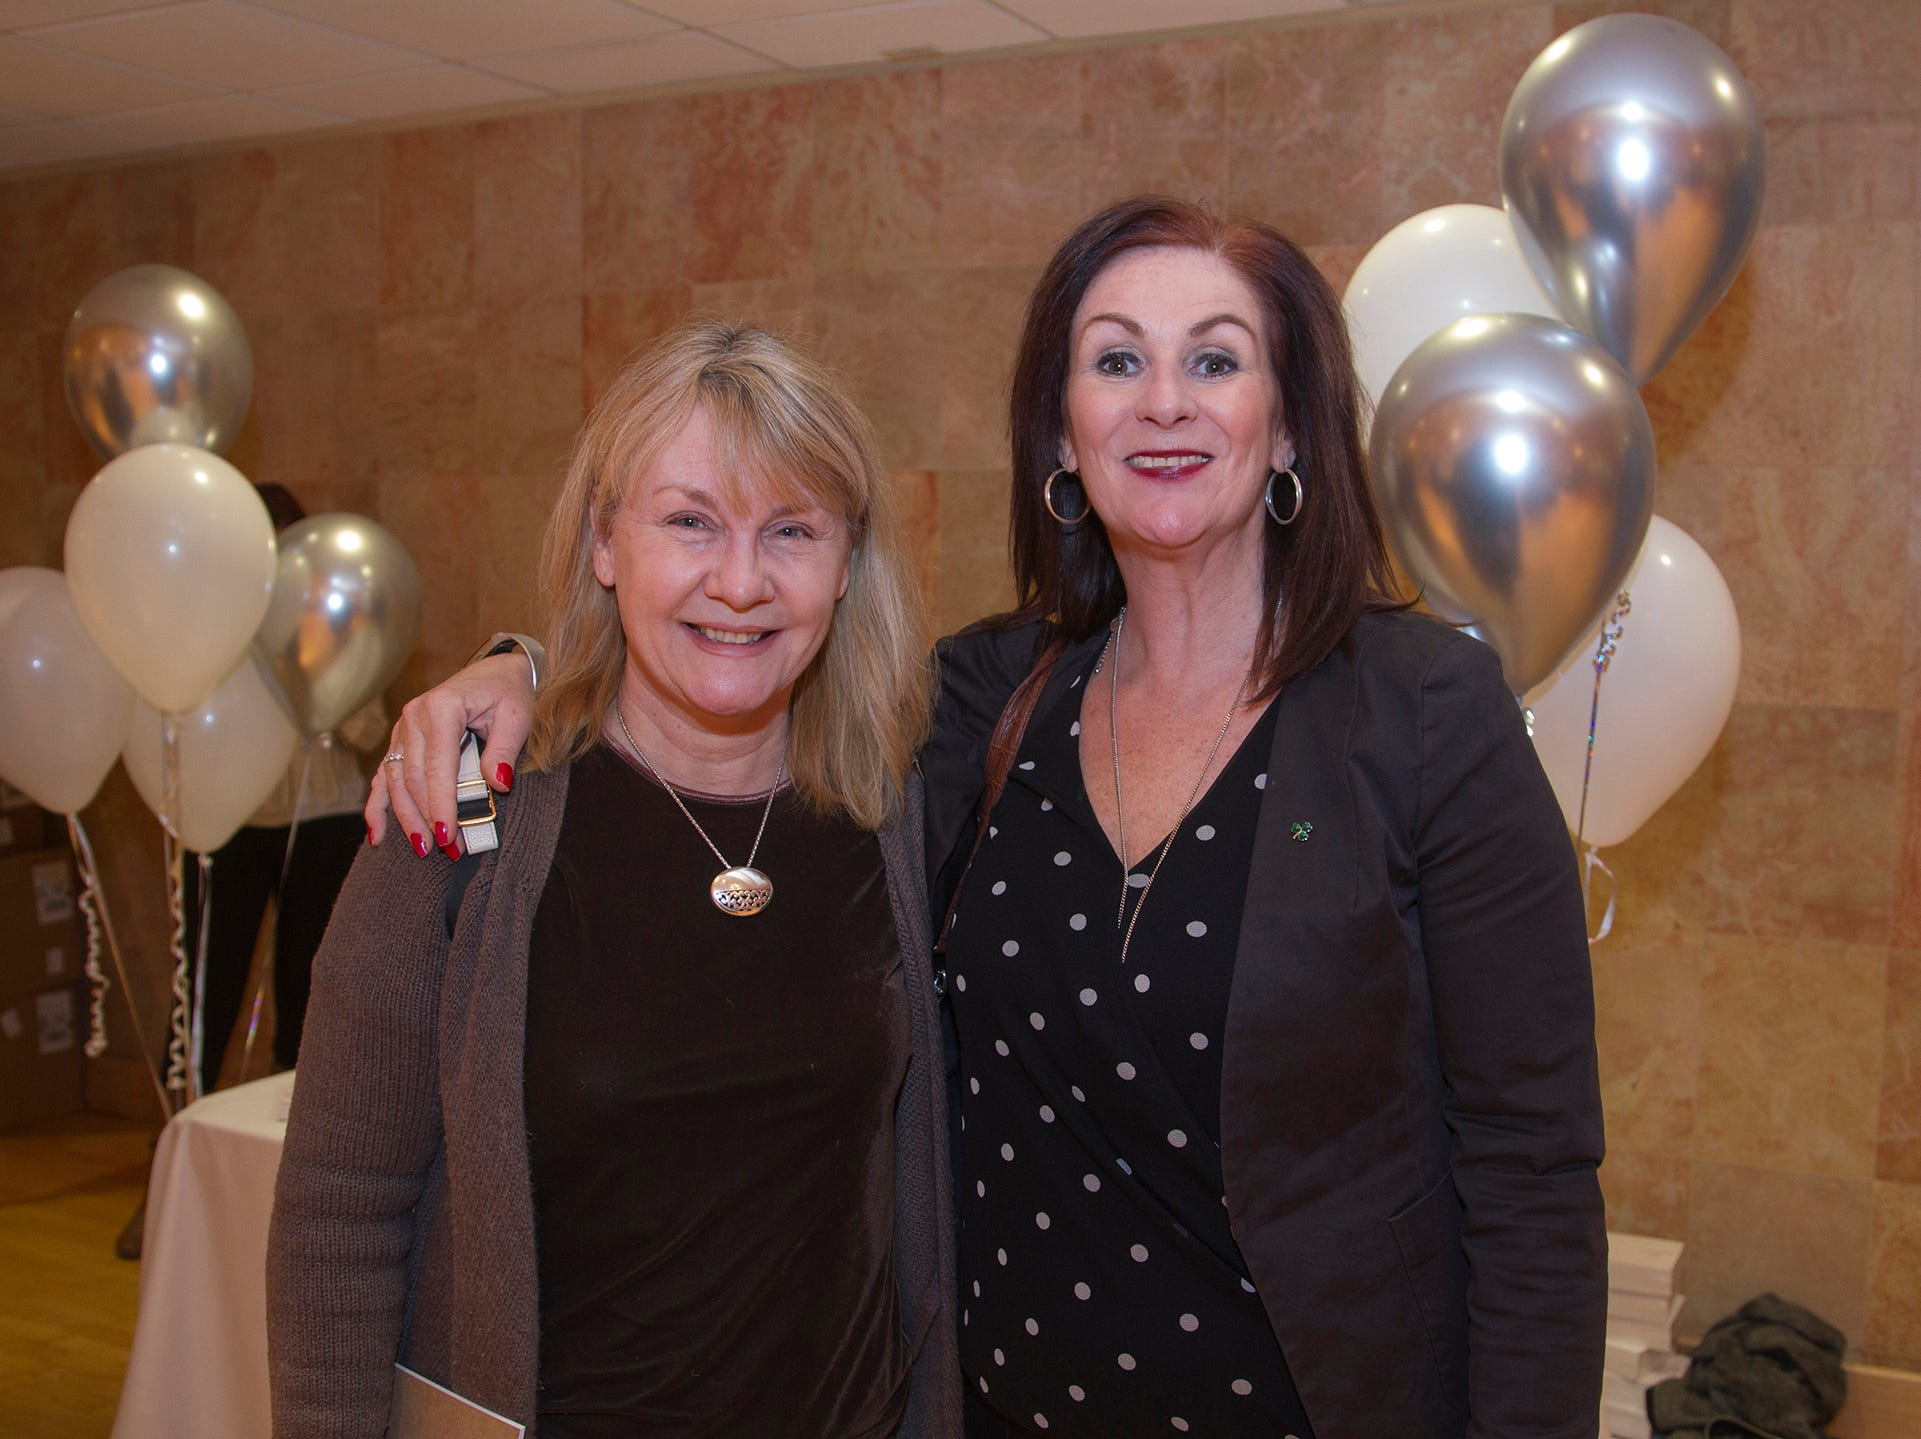 Maryellen Mullarkey, Edel Connolly. Englewood Health and Kaplen JCC on the Palisades sponsored a Mind, Body, & Sole - a women's health & fitness social night at Kaplen JCC on the Palisades in Tenafly.02/13/2019